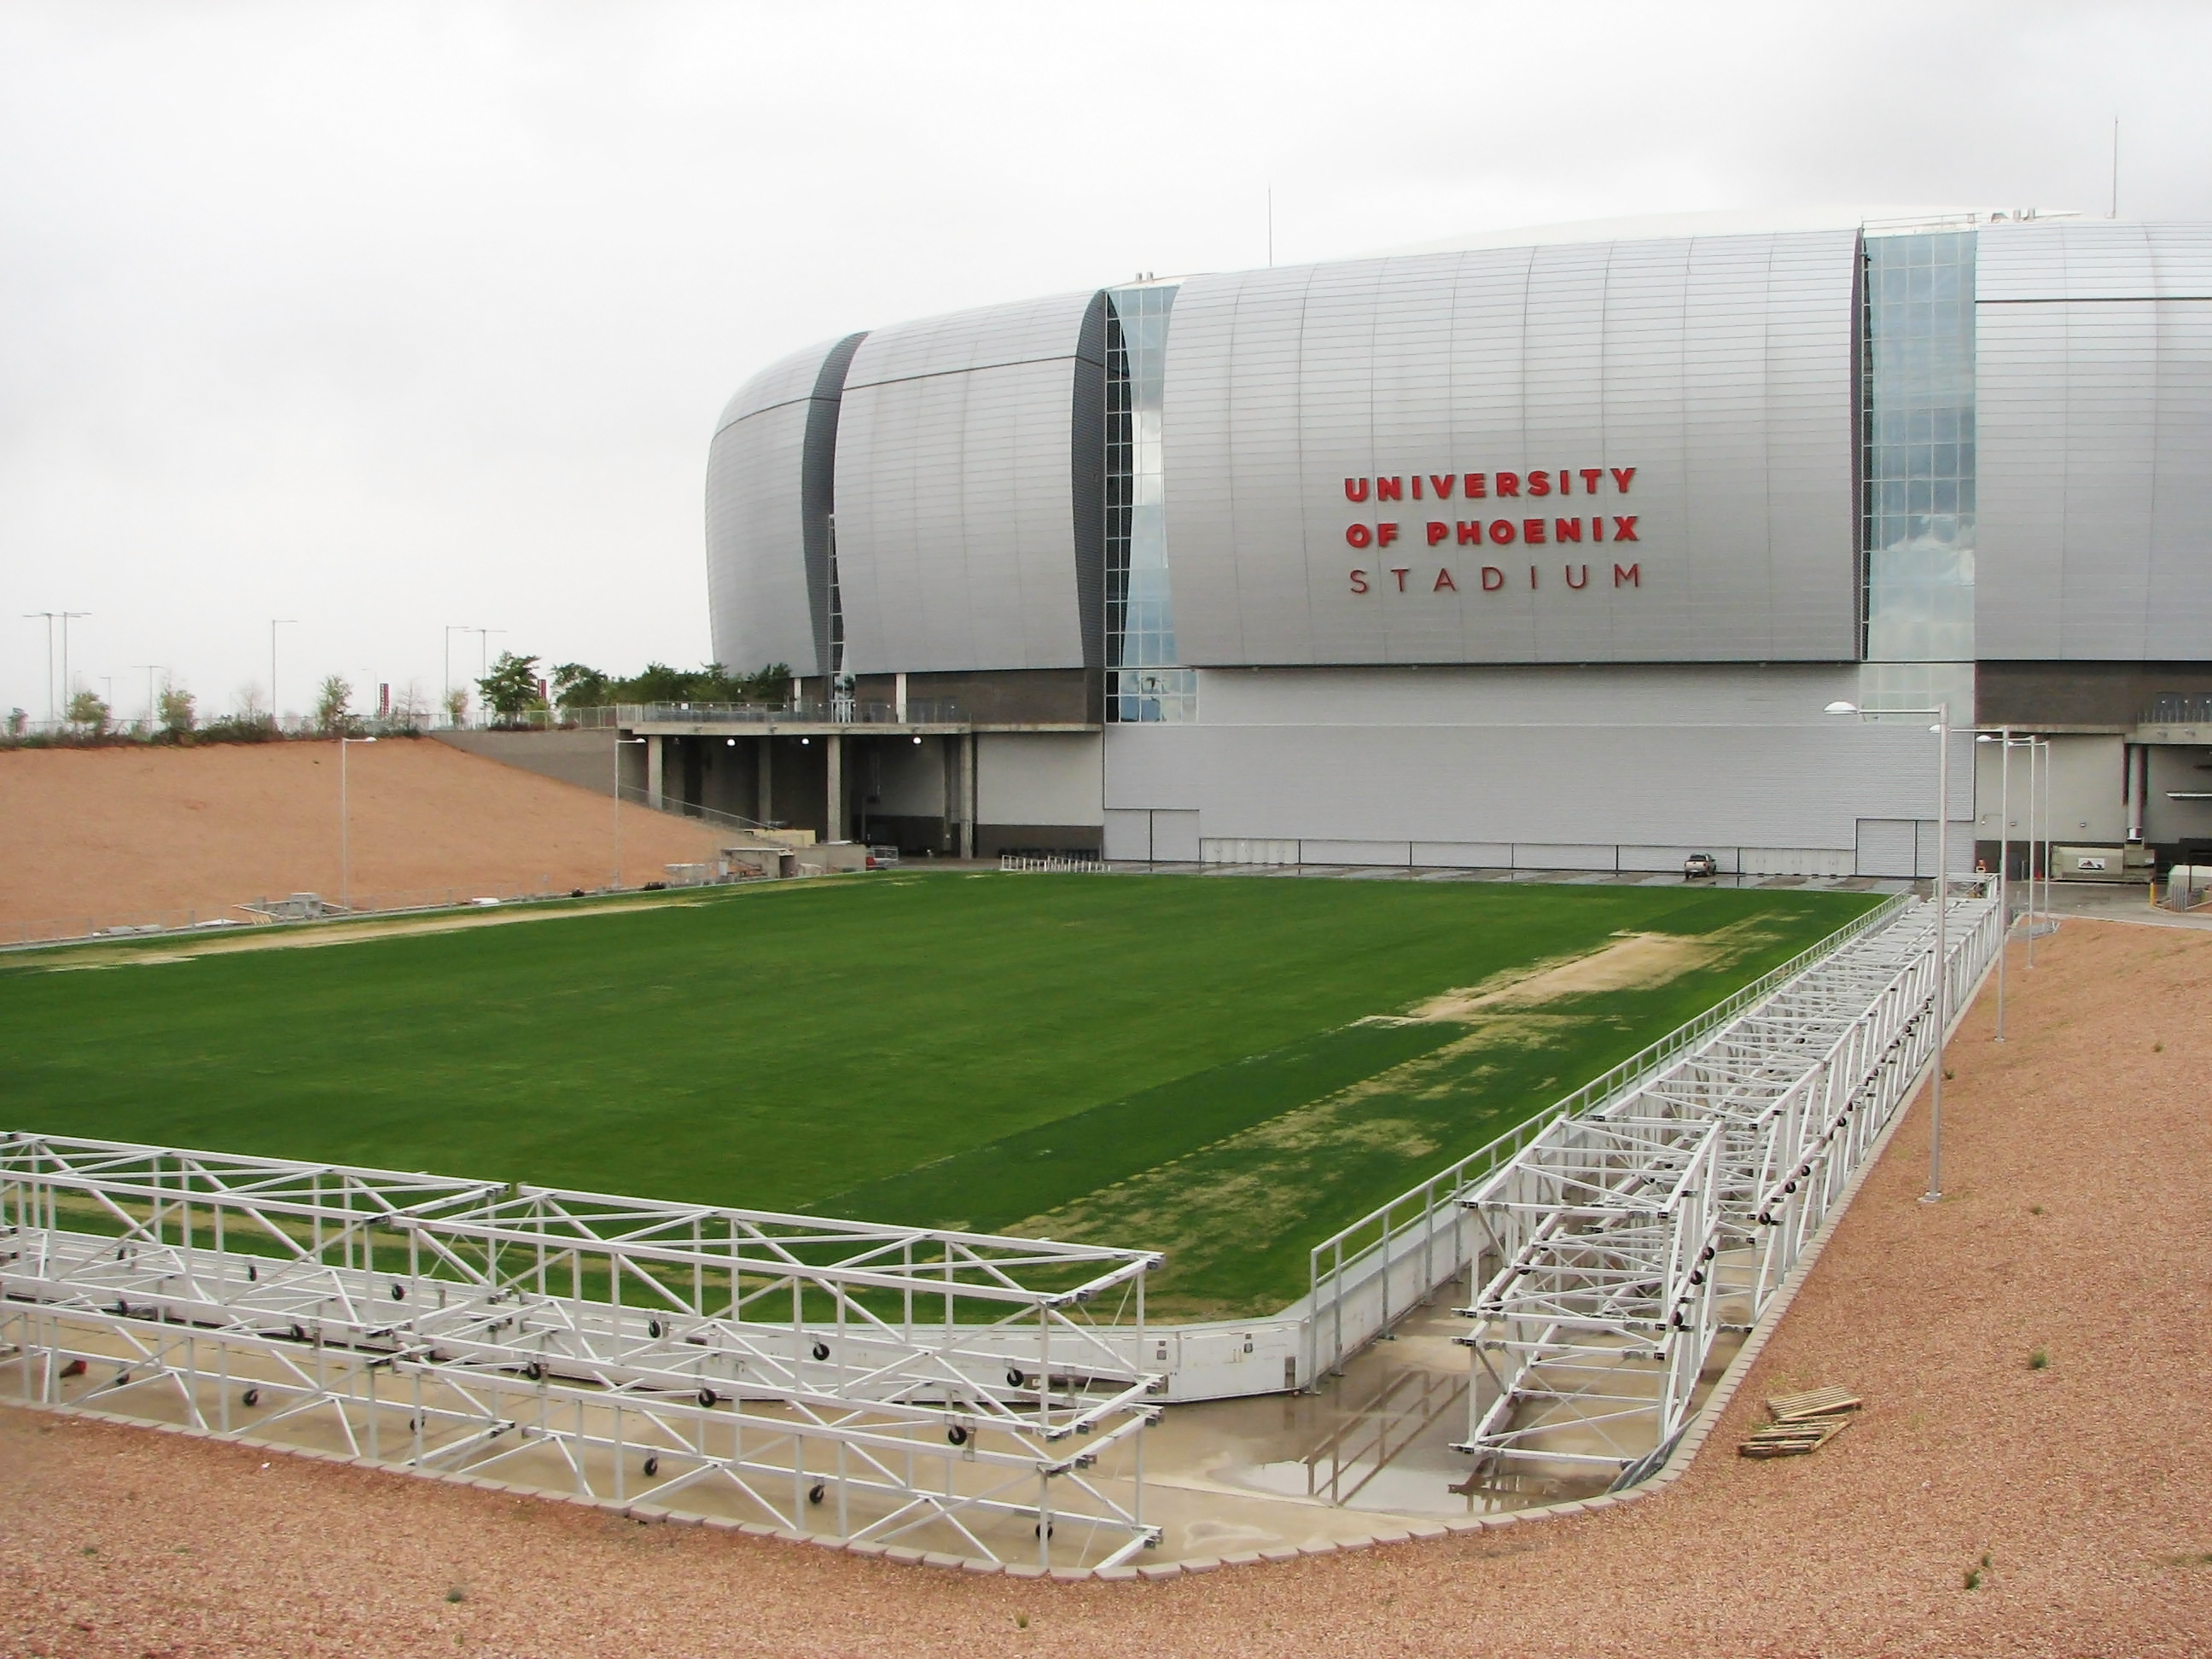 http://upload.wikimedia.org/wikipedia/commons/1/15/University_of_Phoenix_Stadium_field_01.jpg